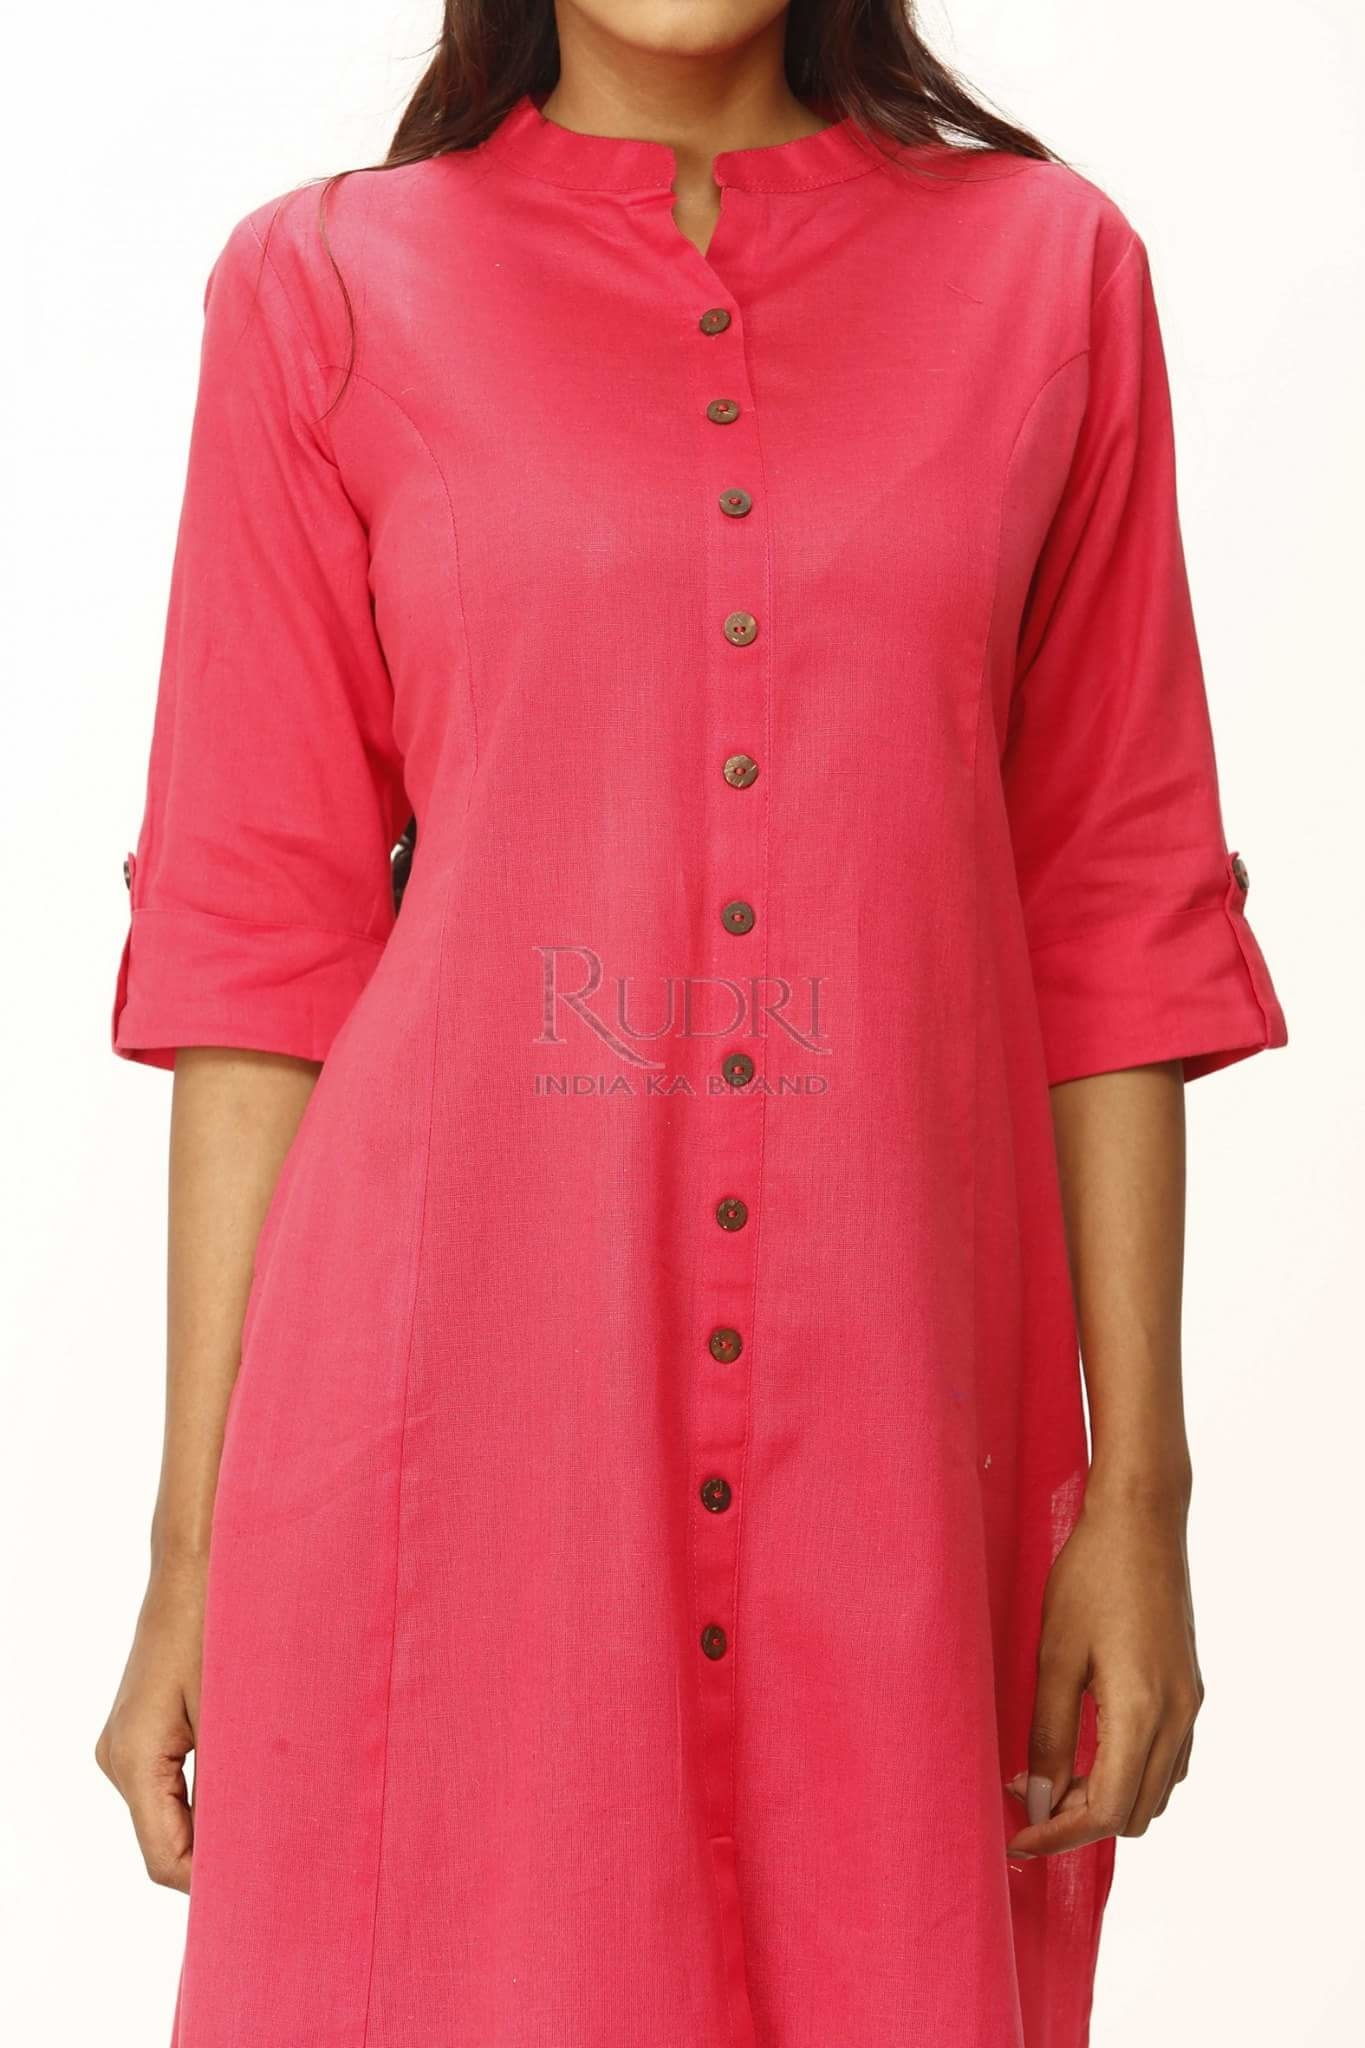 The Beautiful Hue Of Tomato Pink In Cotton Linen Kurti By Rudri. http://www.rudri.in/rdk03.html #Exclusive #Kurtis #IndianFashion #fashion #casualstyle #NewTrend #trendalert